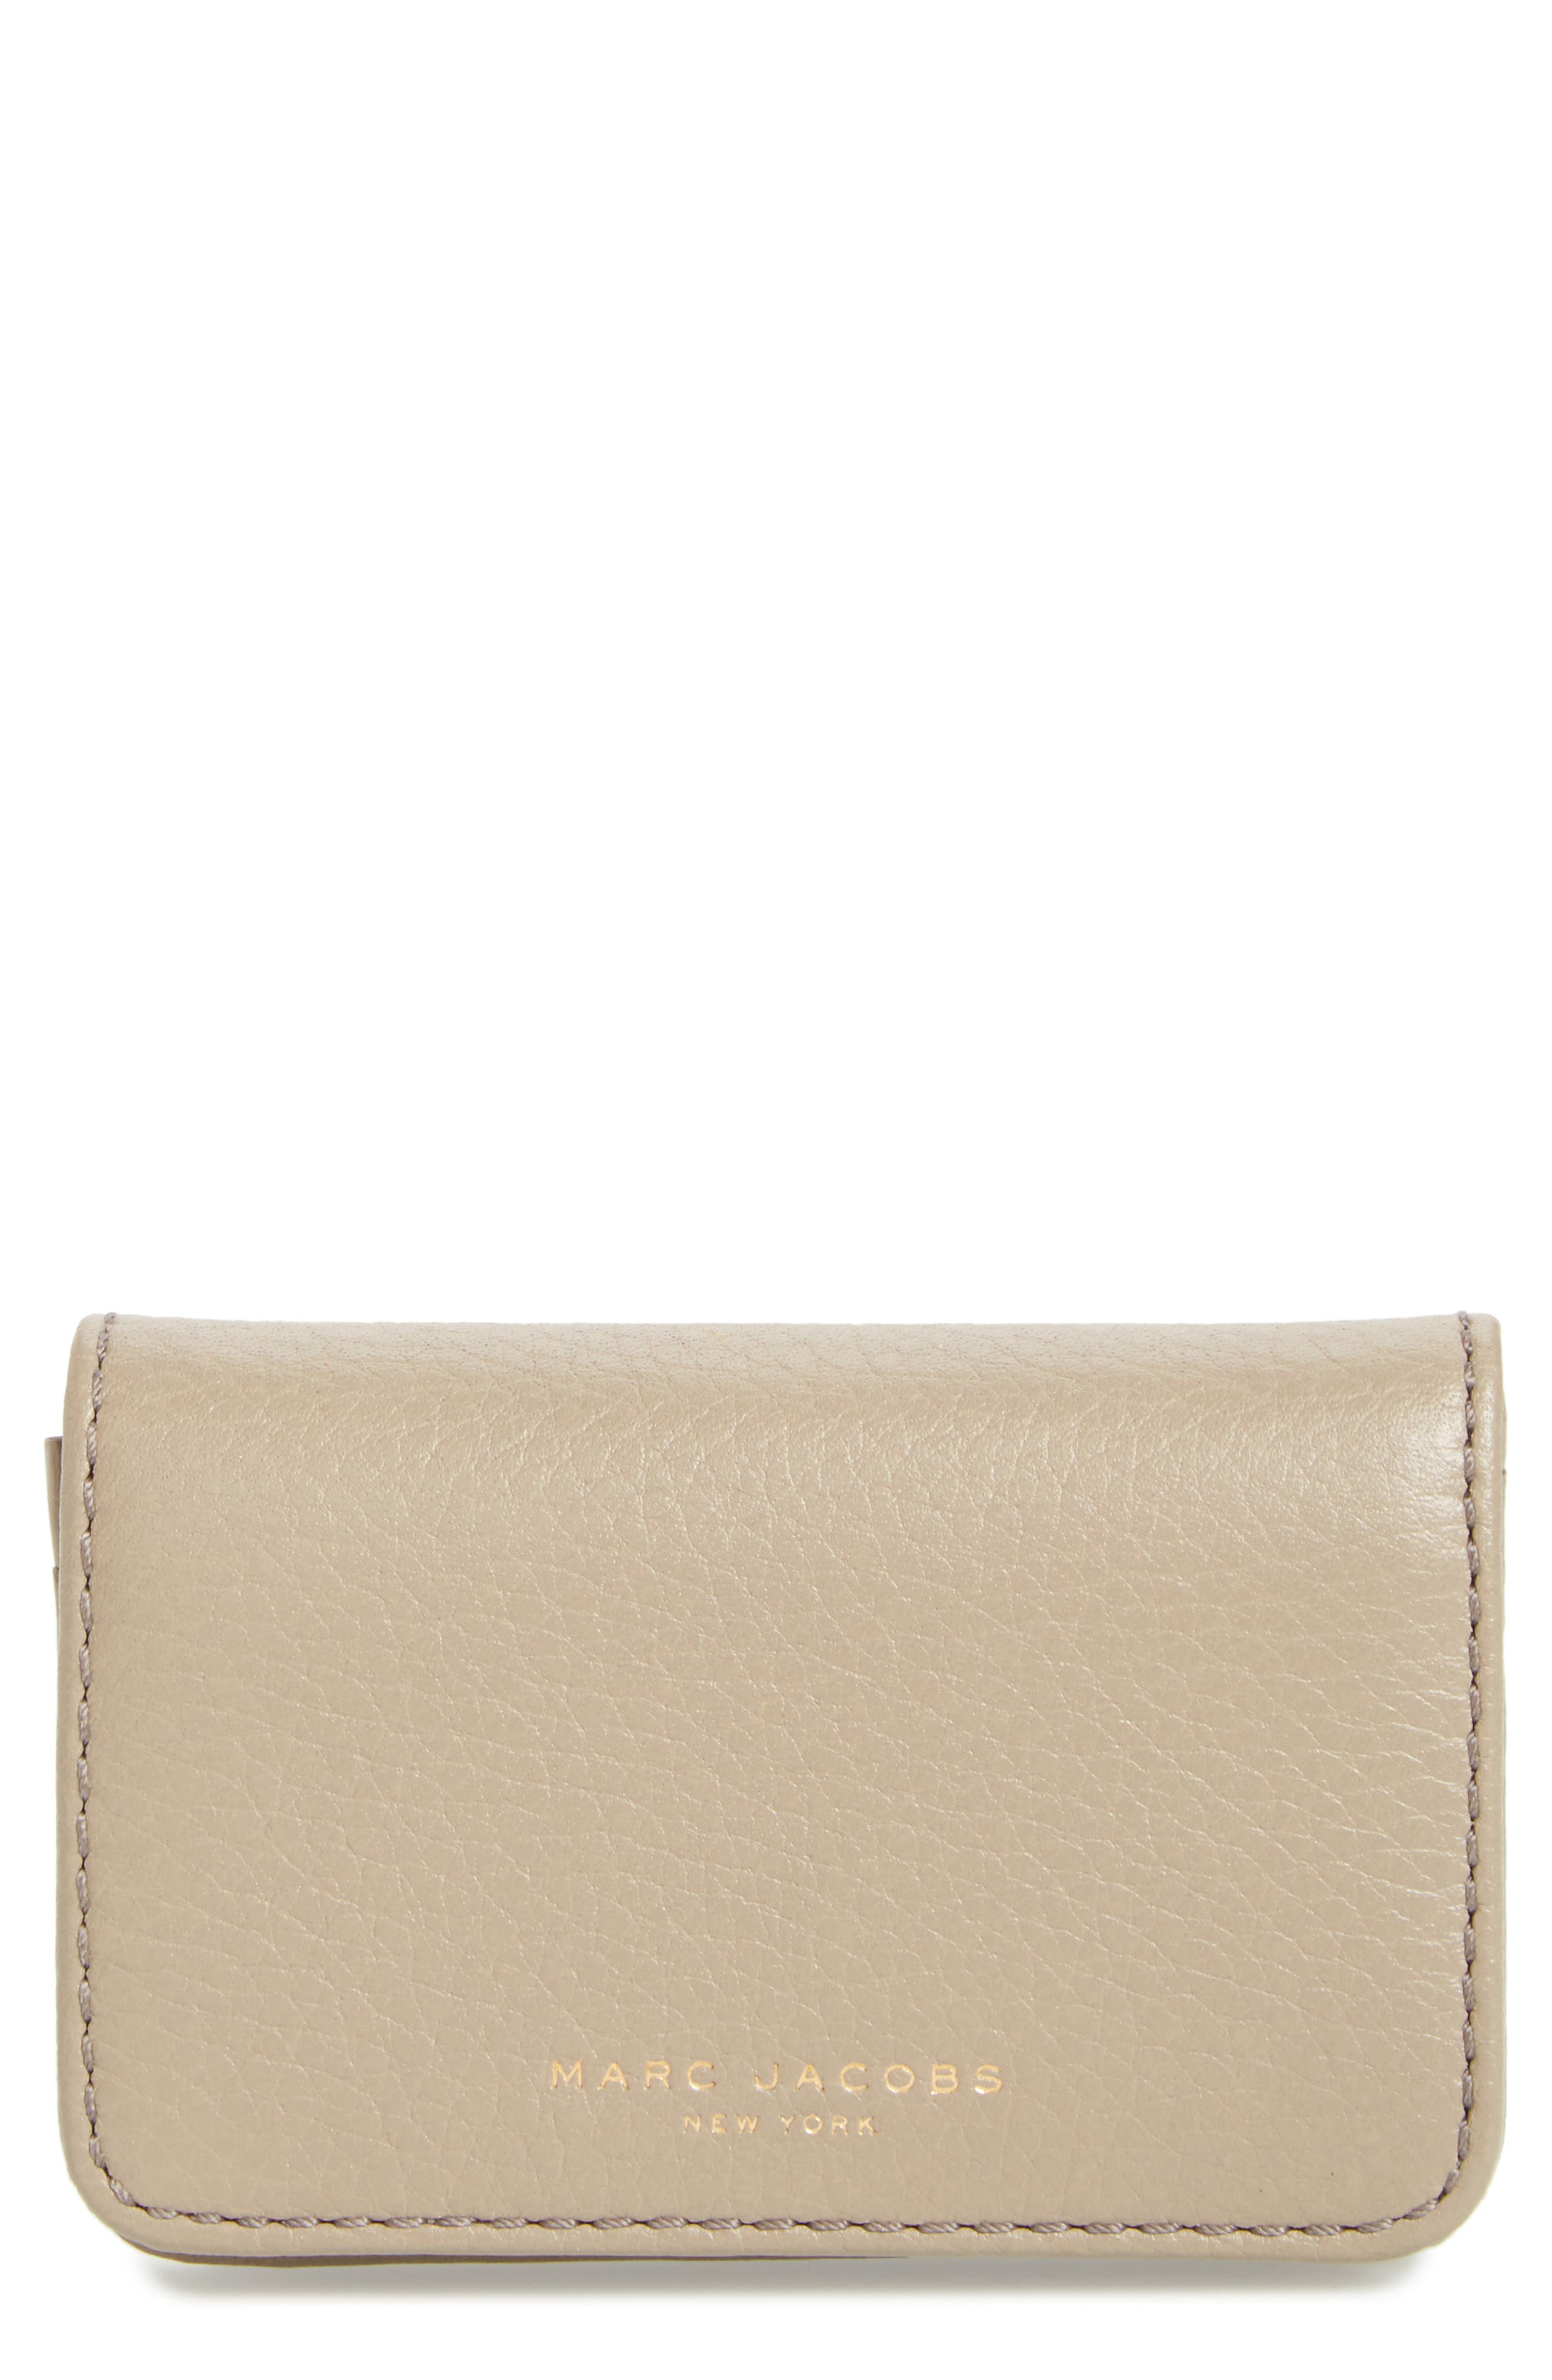 MARC JACOBS Recruit Leather Business Card Case